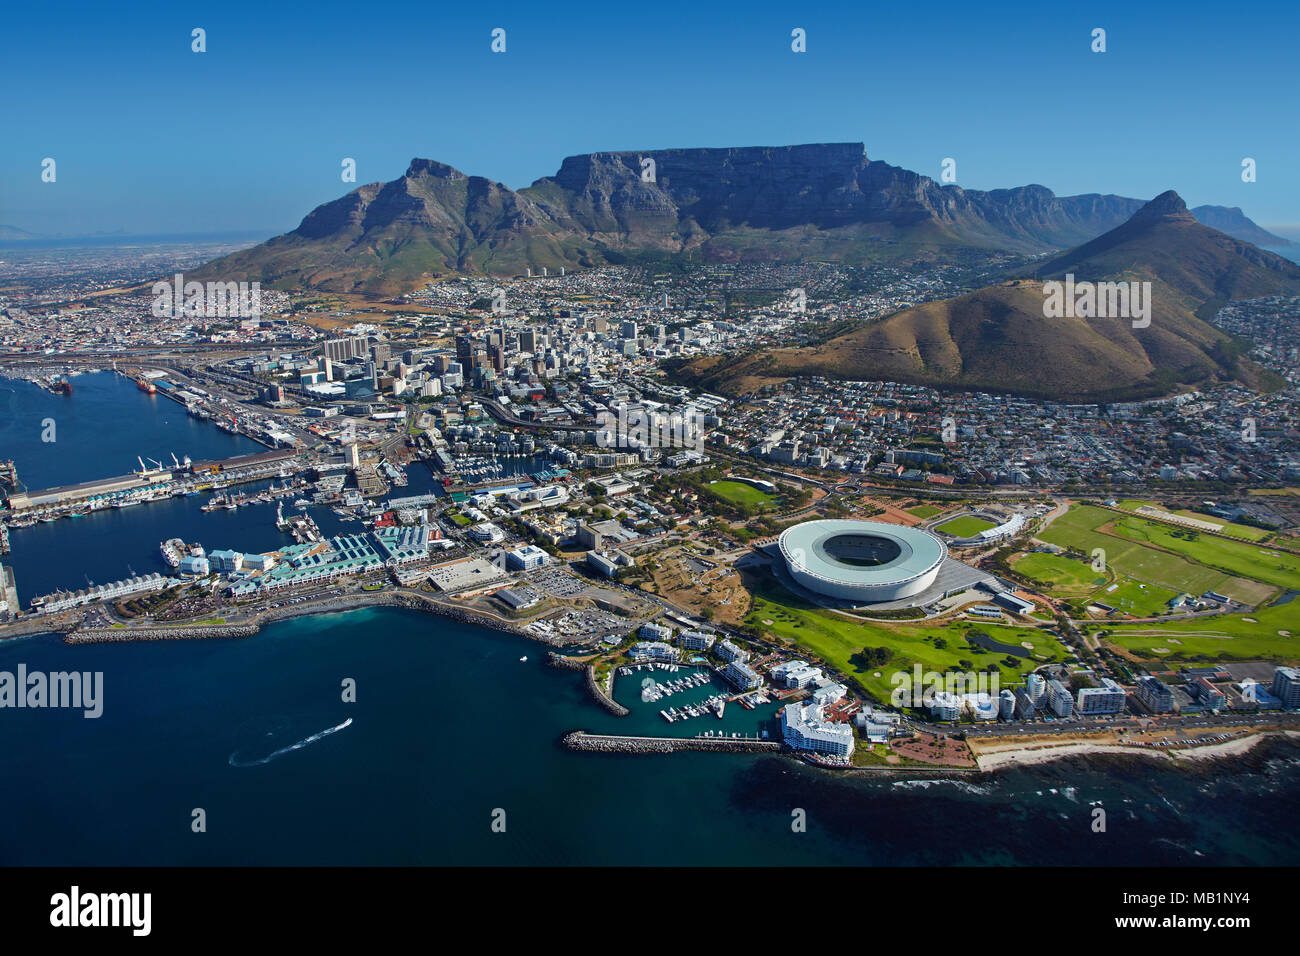 Cape Town Stadium, V & A Waterfront (left), and Table Mountain, Cape Town, South Africa - aerial - Stock Image